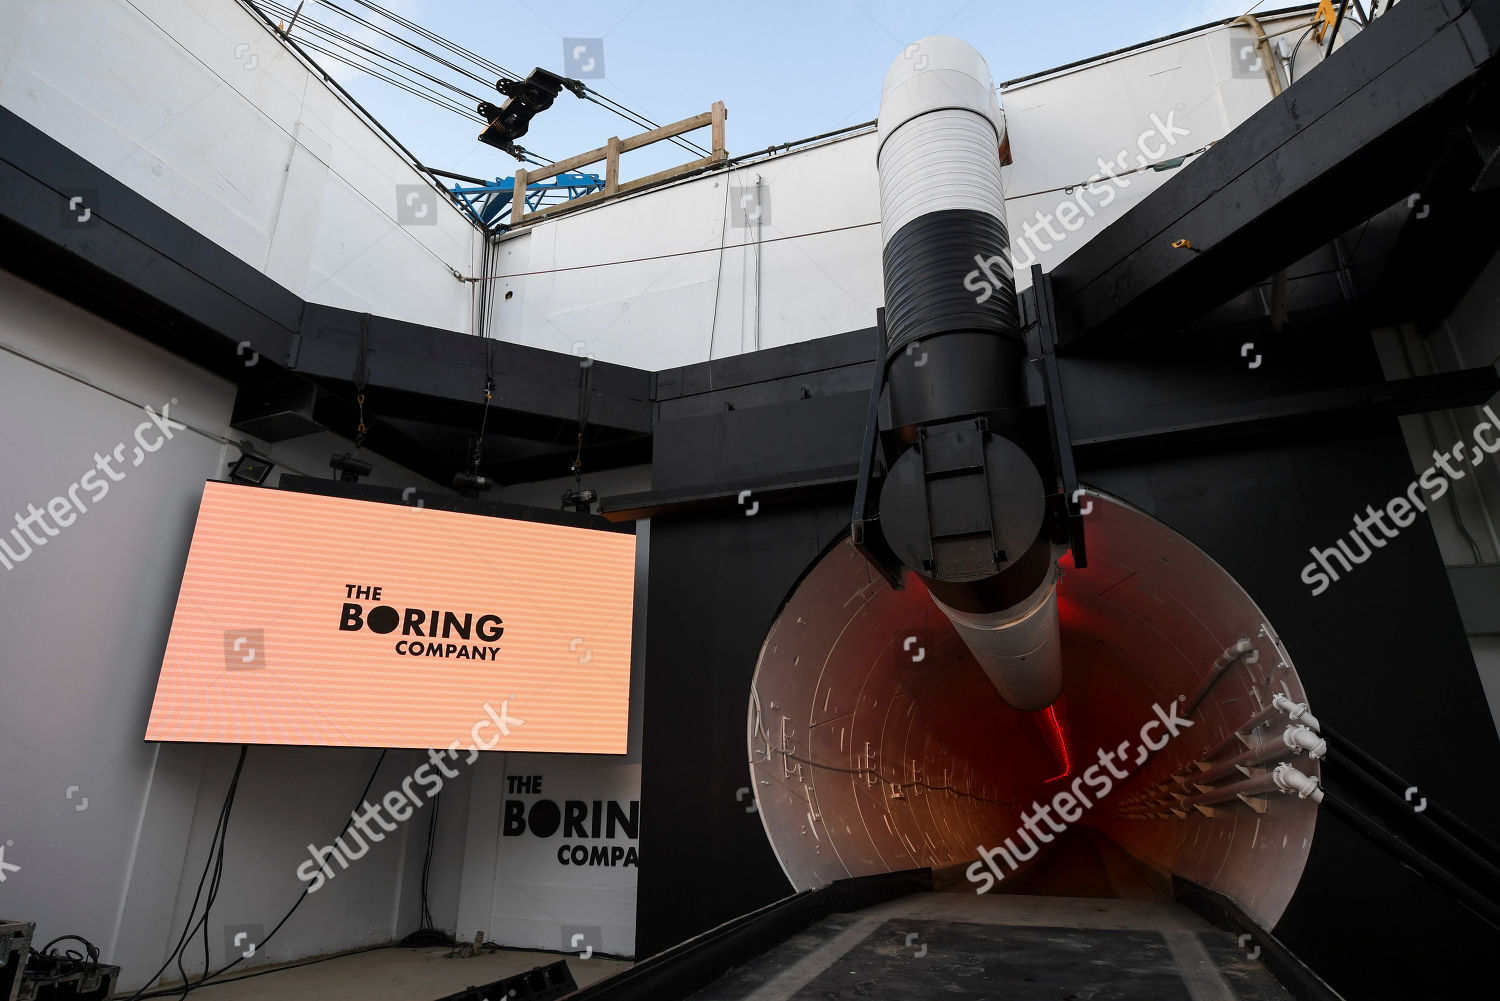 Boring Co signage displayed tunnel entrance before Foto